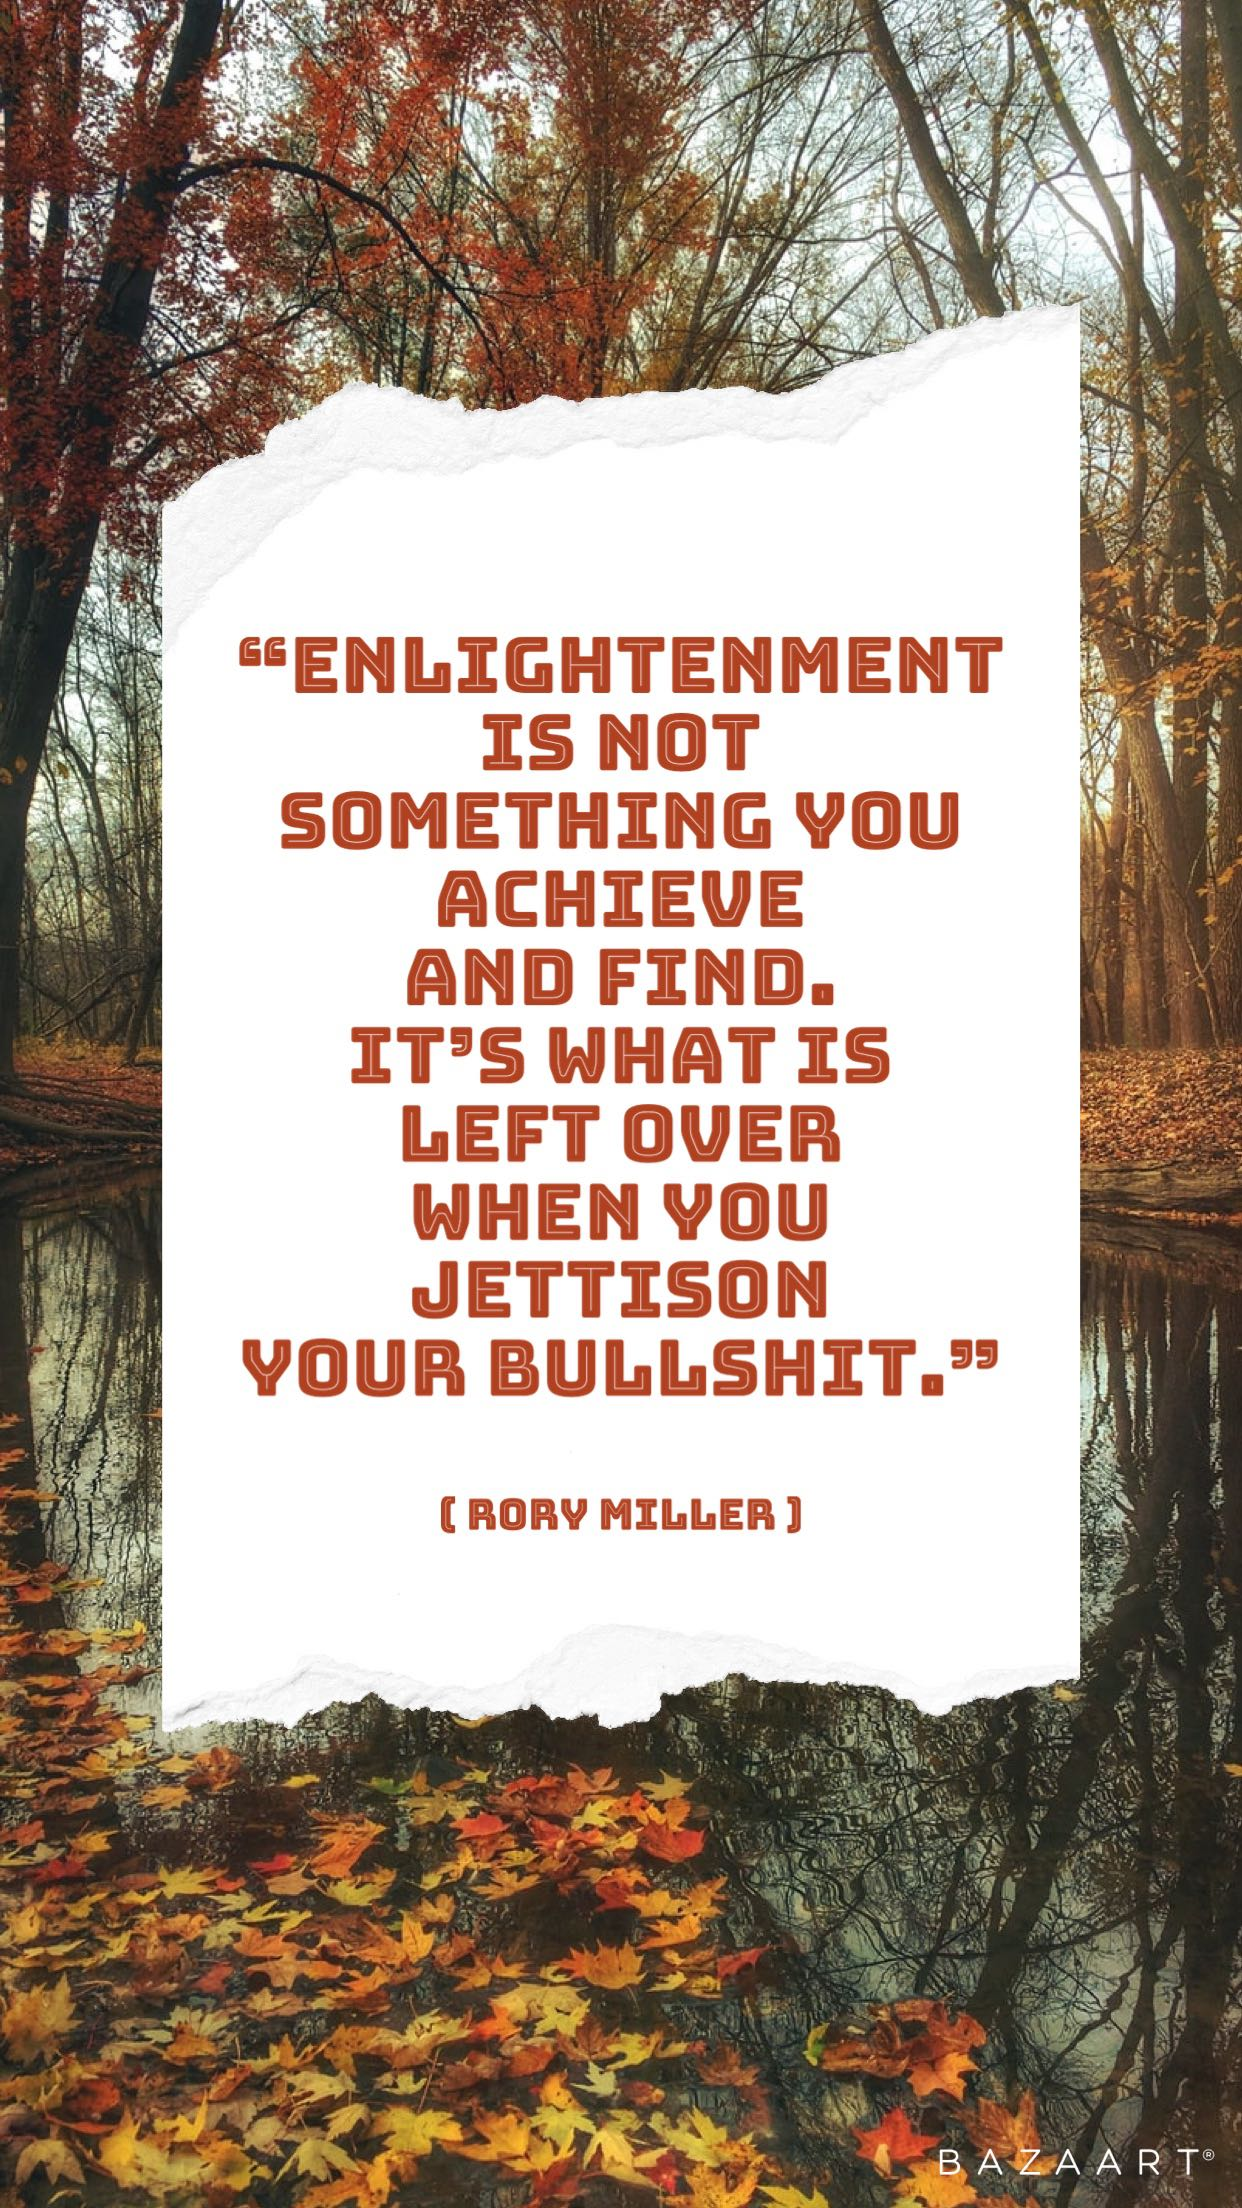 "[Image] ""Enlightenment is not something you achieve and find. It's what is left over when you jettison your bullshit."" — Rory Miller"